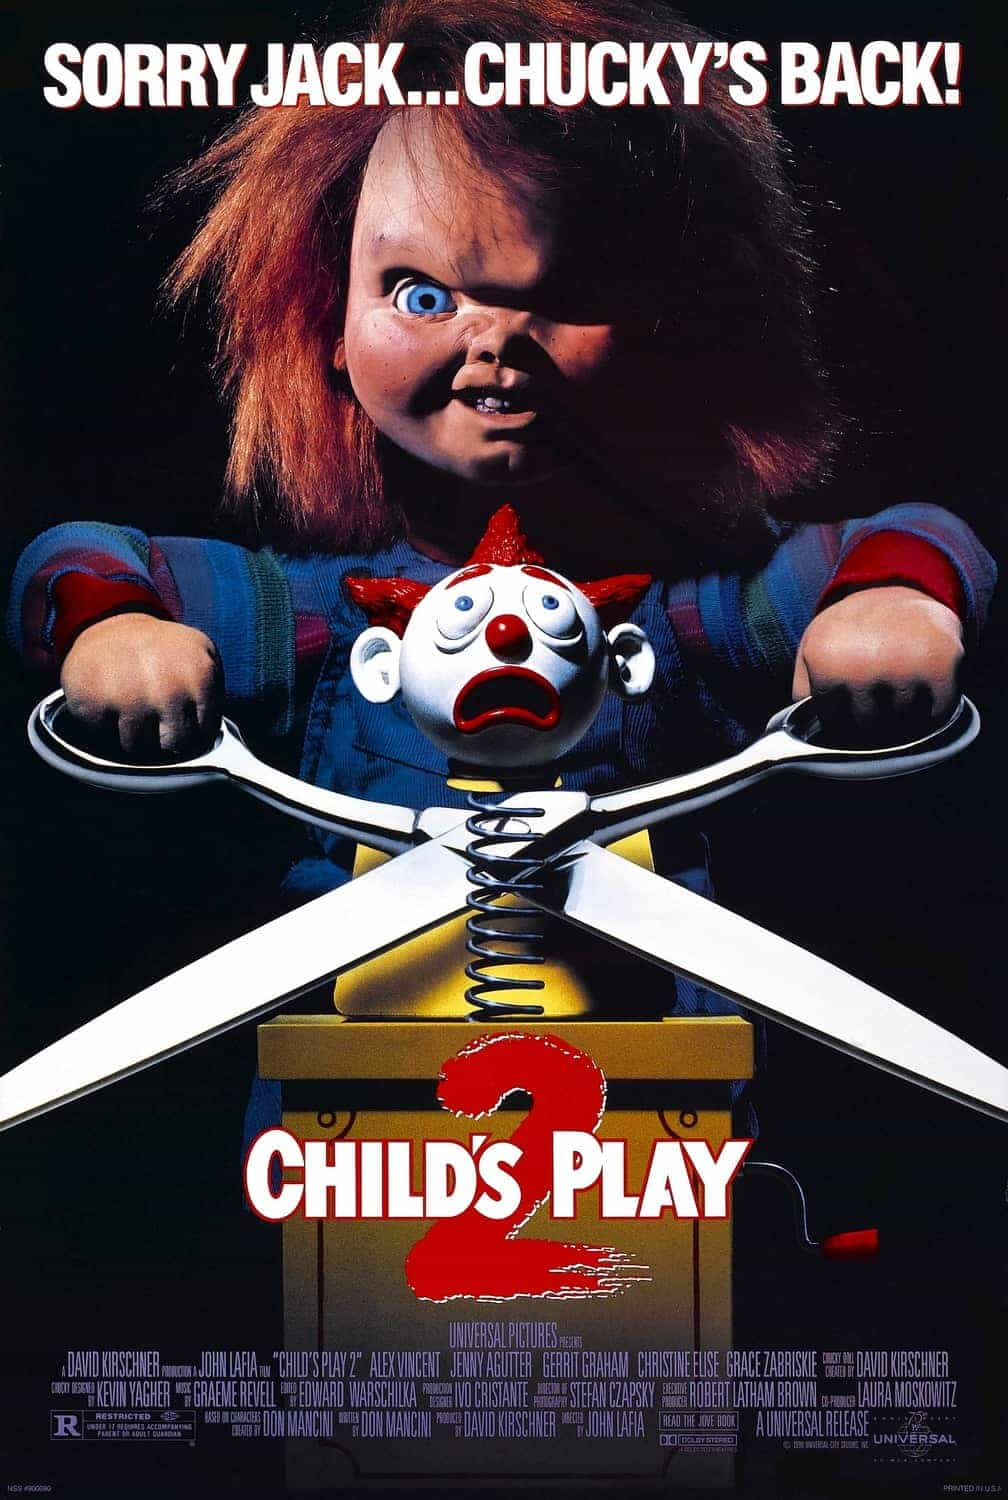 Child's Play 2: Chuckys Back